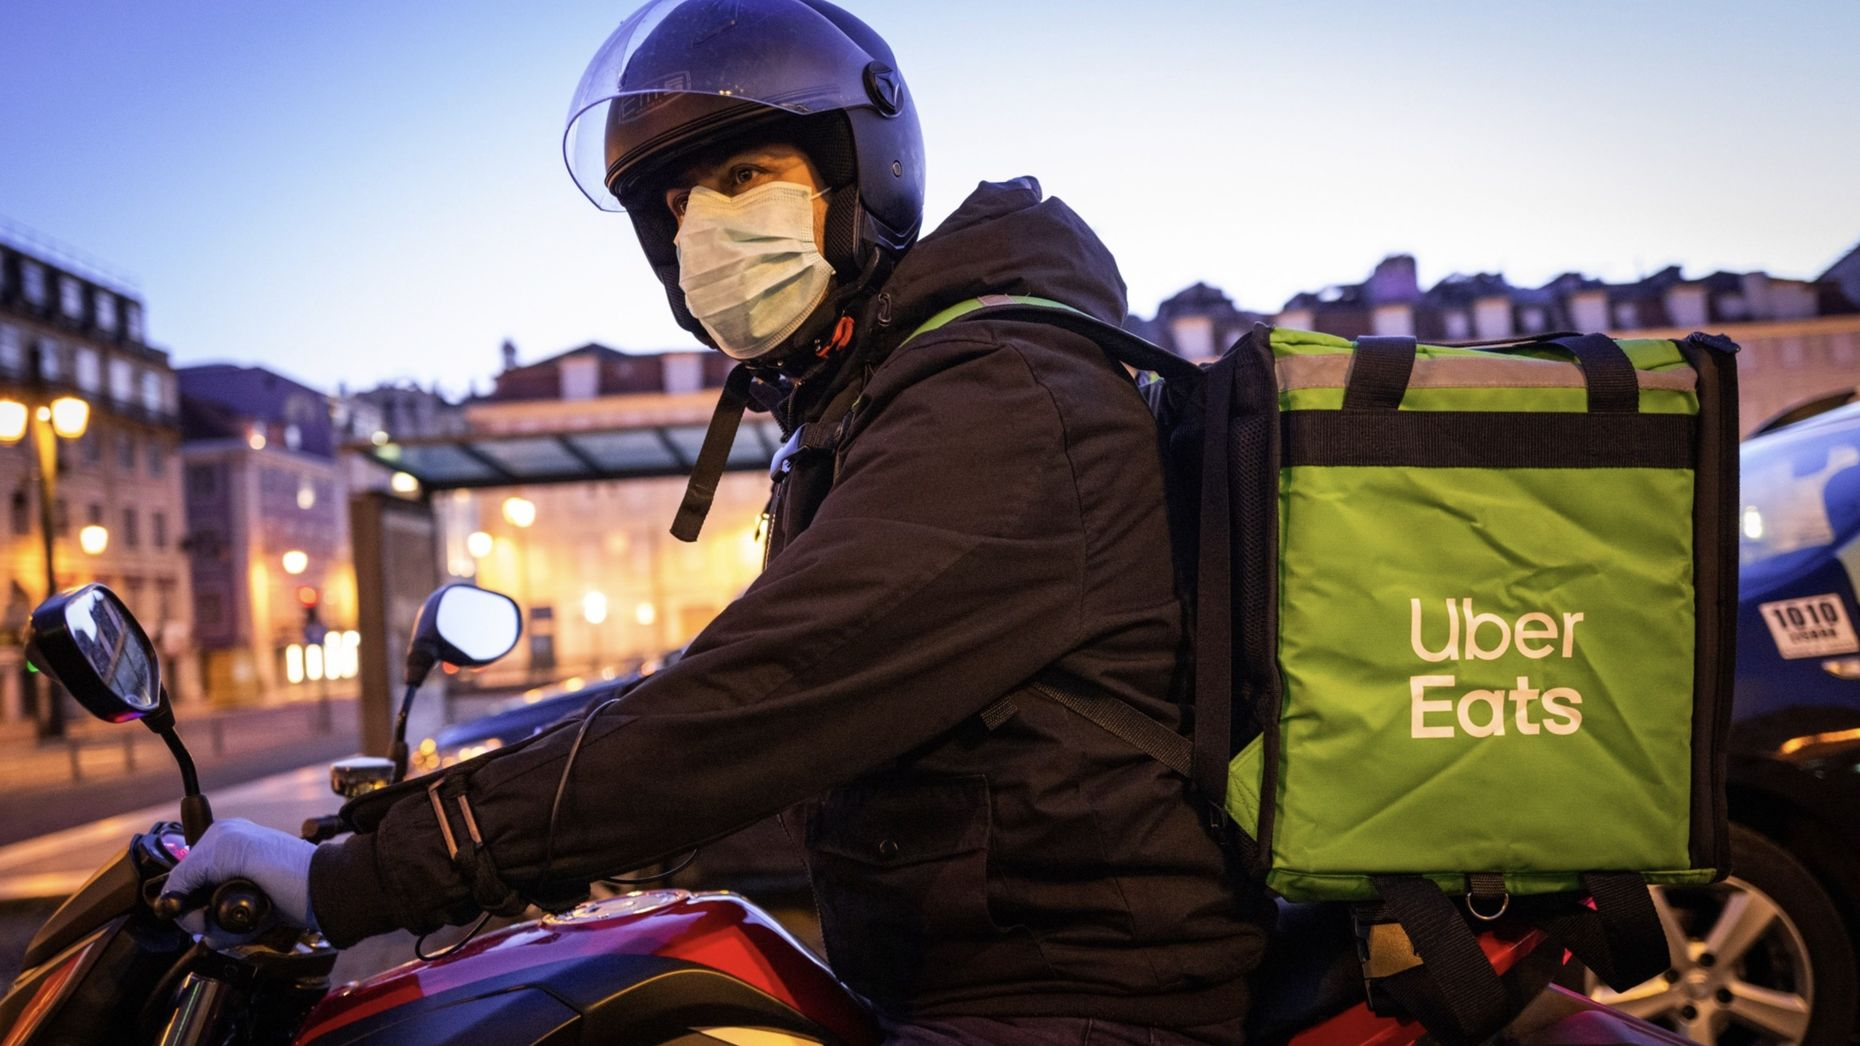 An Uber Eats courier in Portugal this past weekend. Photo by Bloomberg